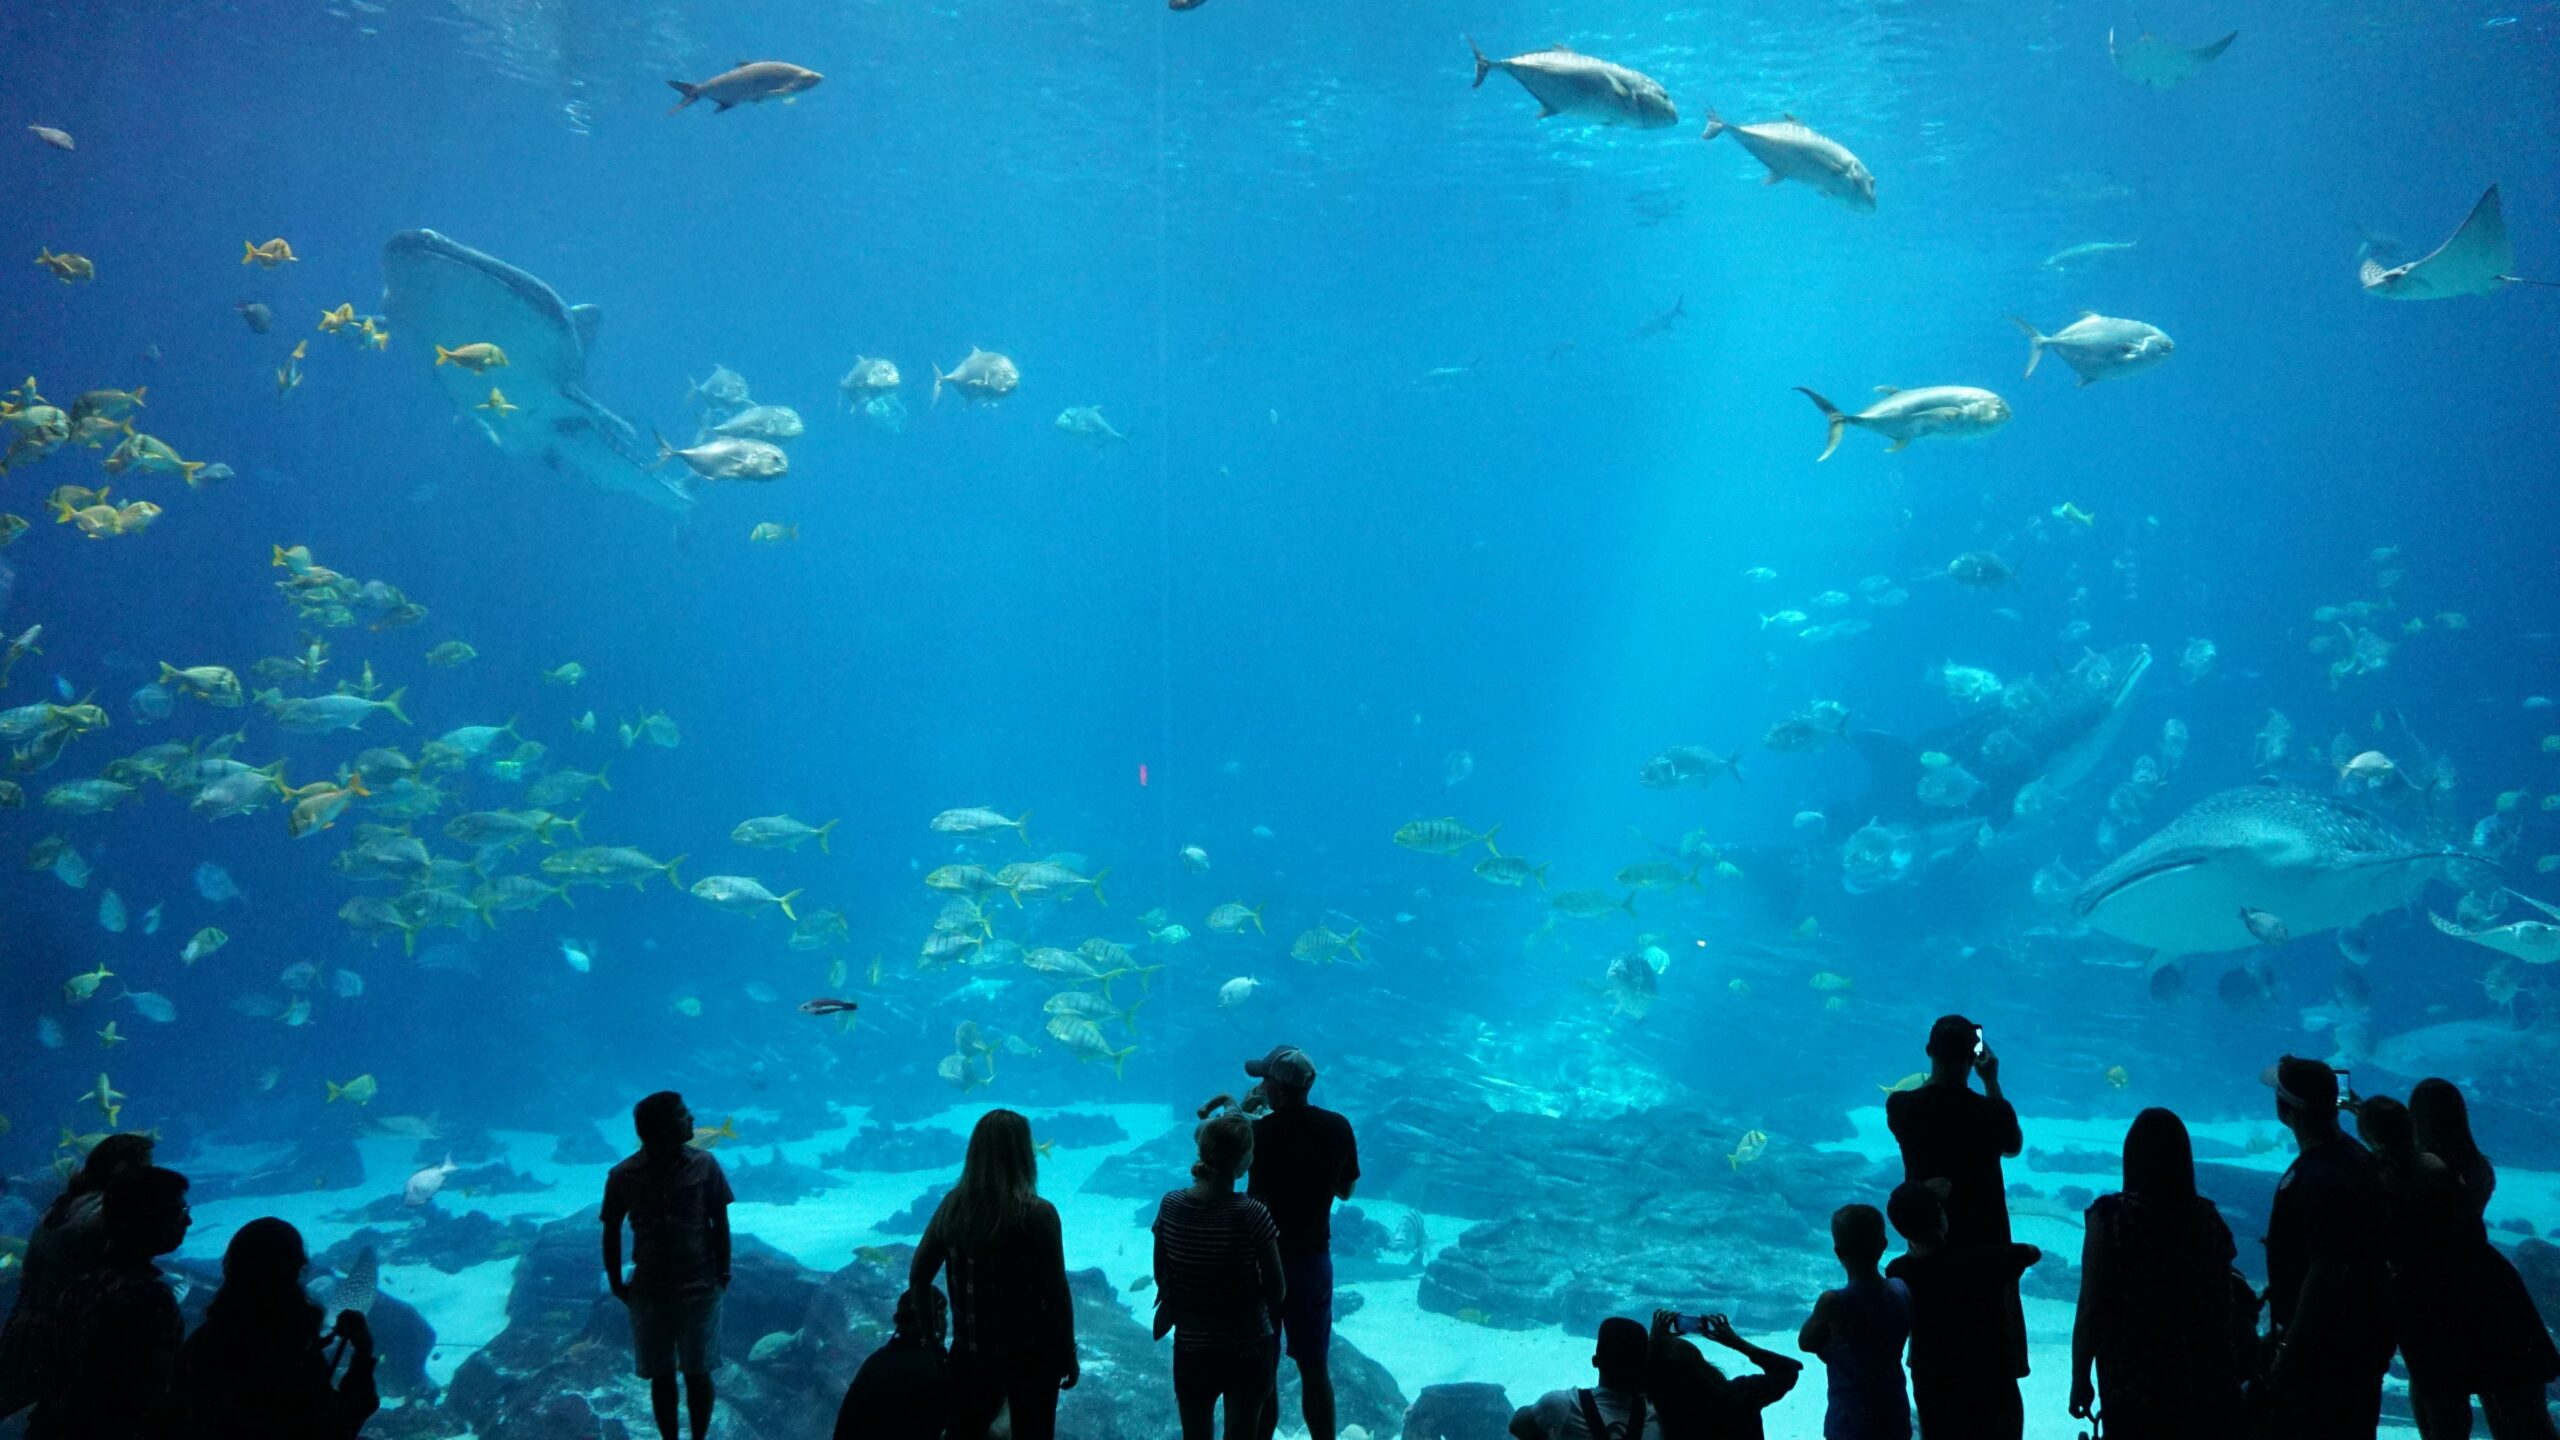 Aquarium with fish, people in foreground